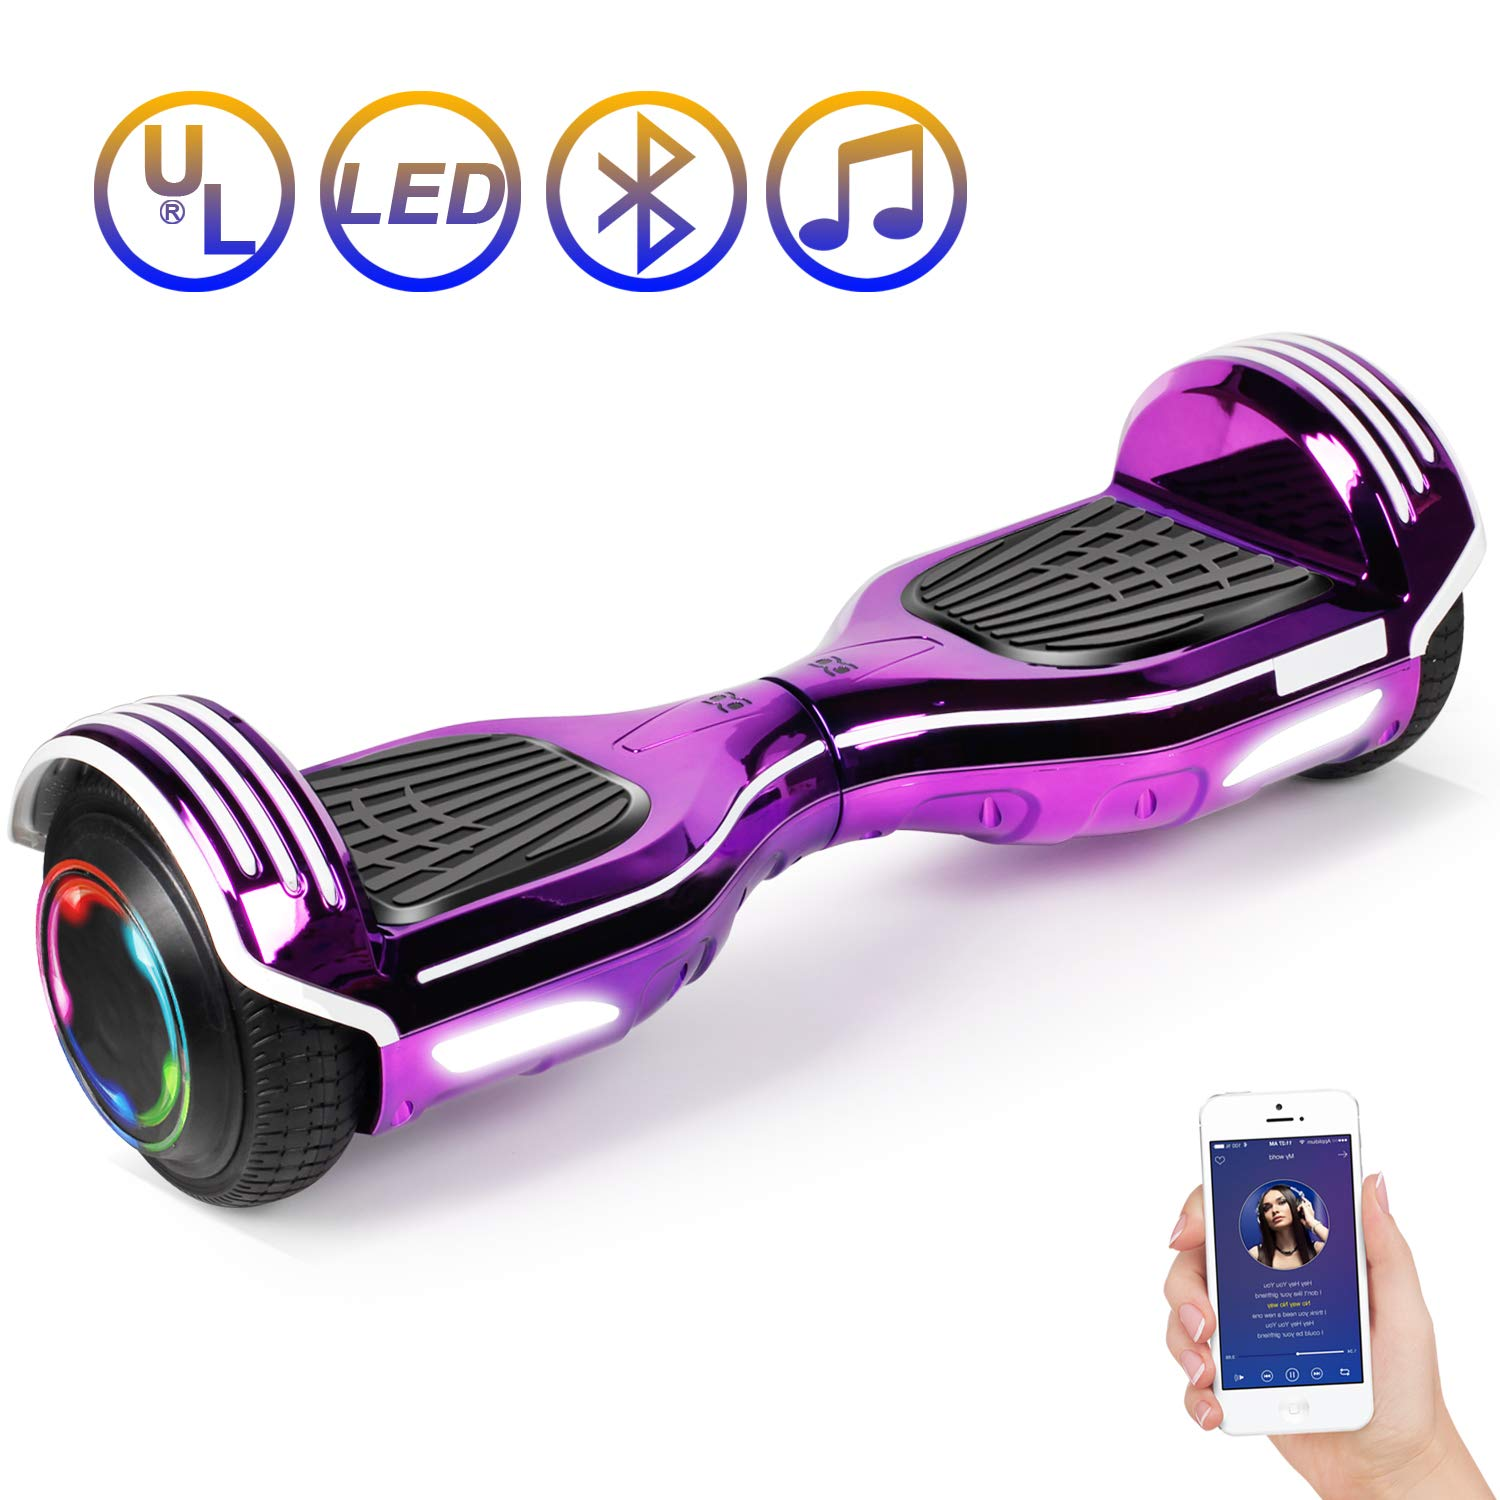 SISIGAD Hoverboard Self Balancing Scooter 6.5'' Two-Wheel Self Balancing Hoverboard with Bluetooth Speaker Electric Scooter for Adult Kids Gift UL 2272 Certified 138A Series - Plating Purple by SISIGAD